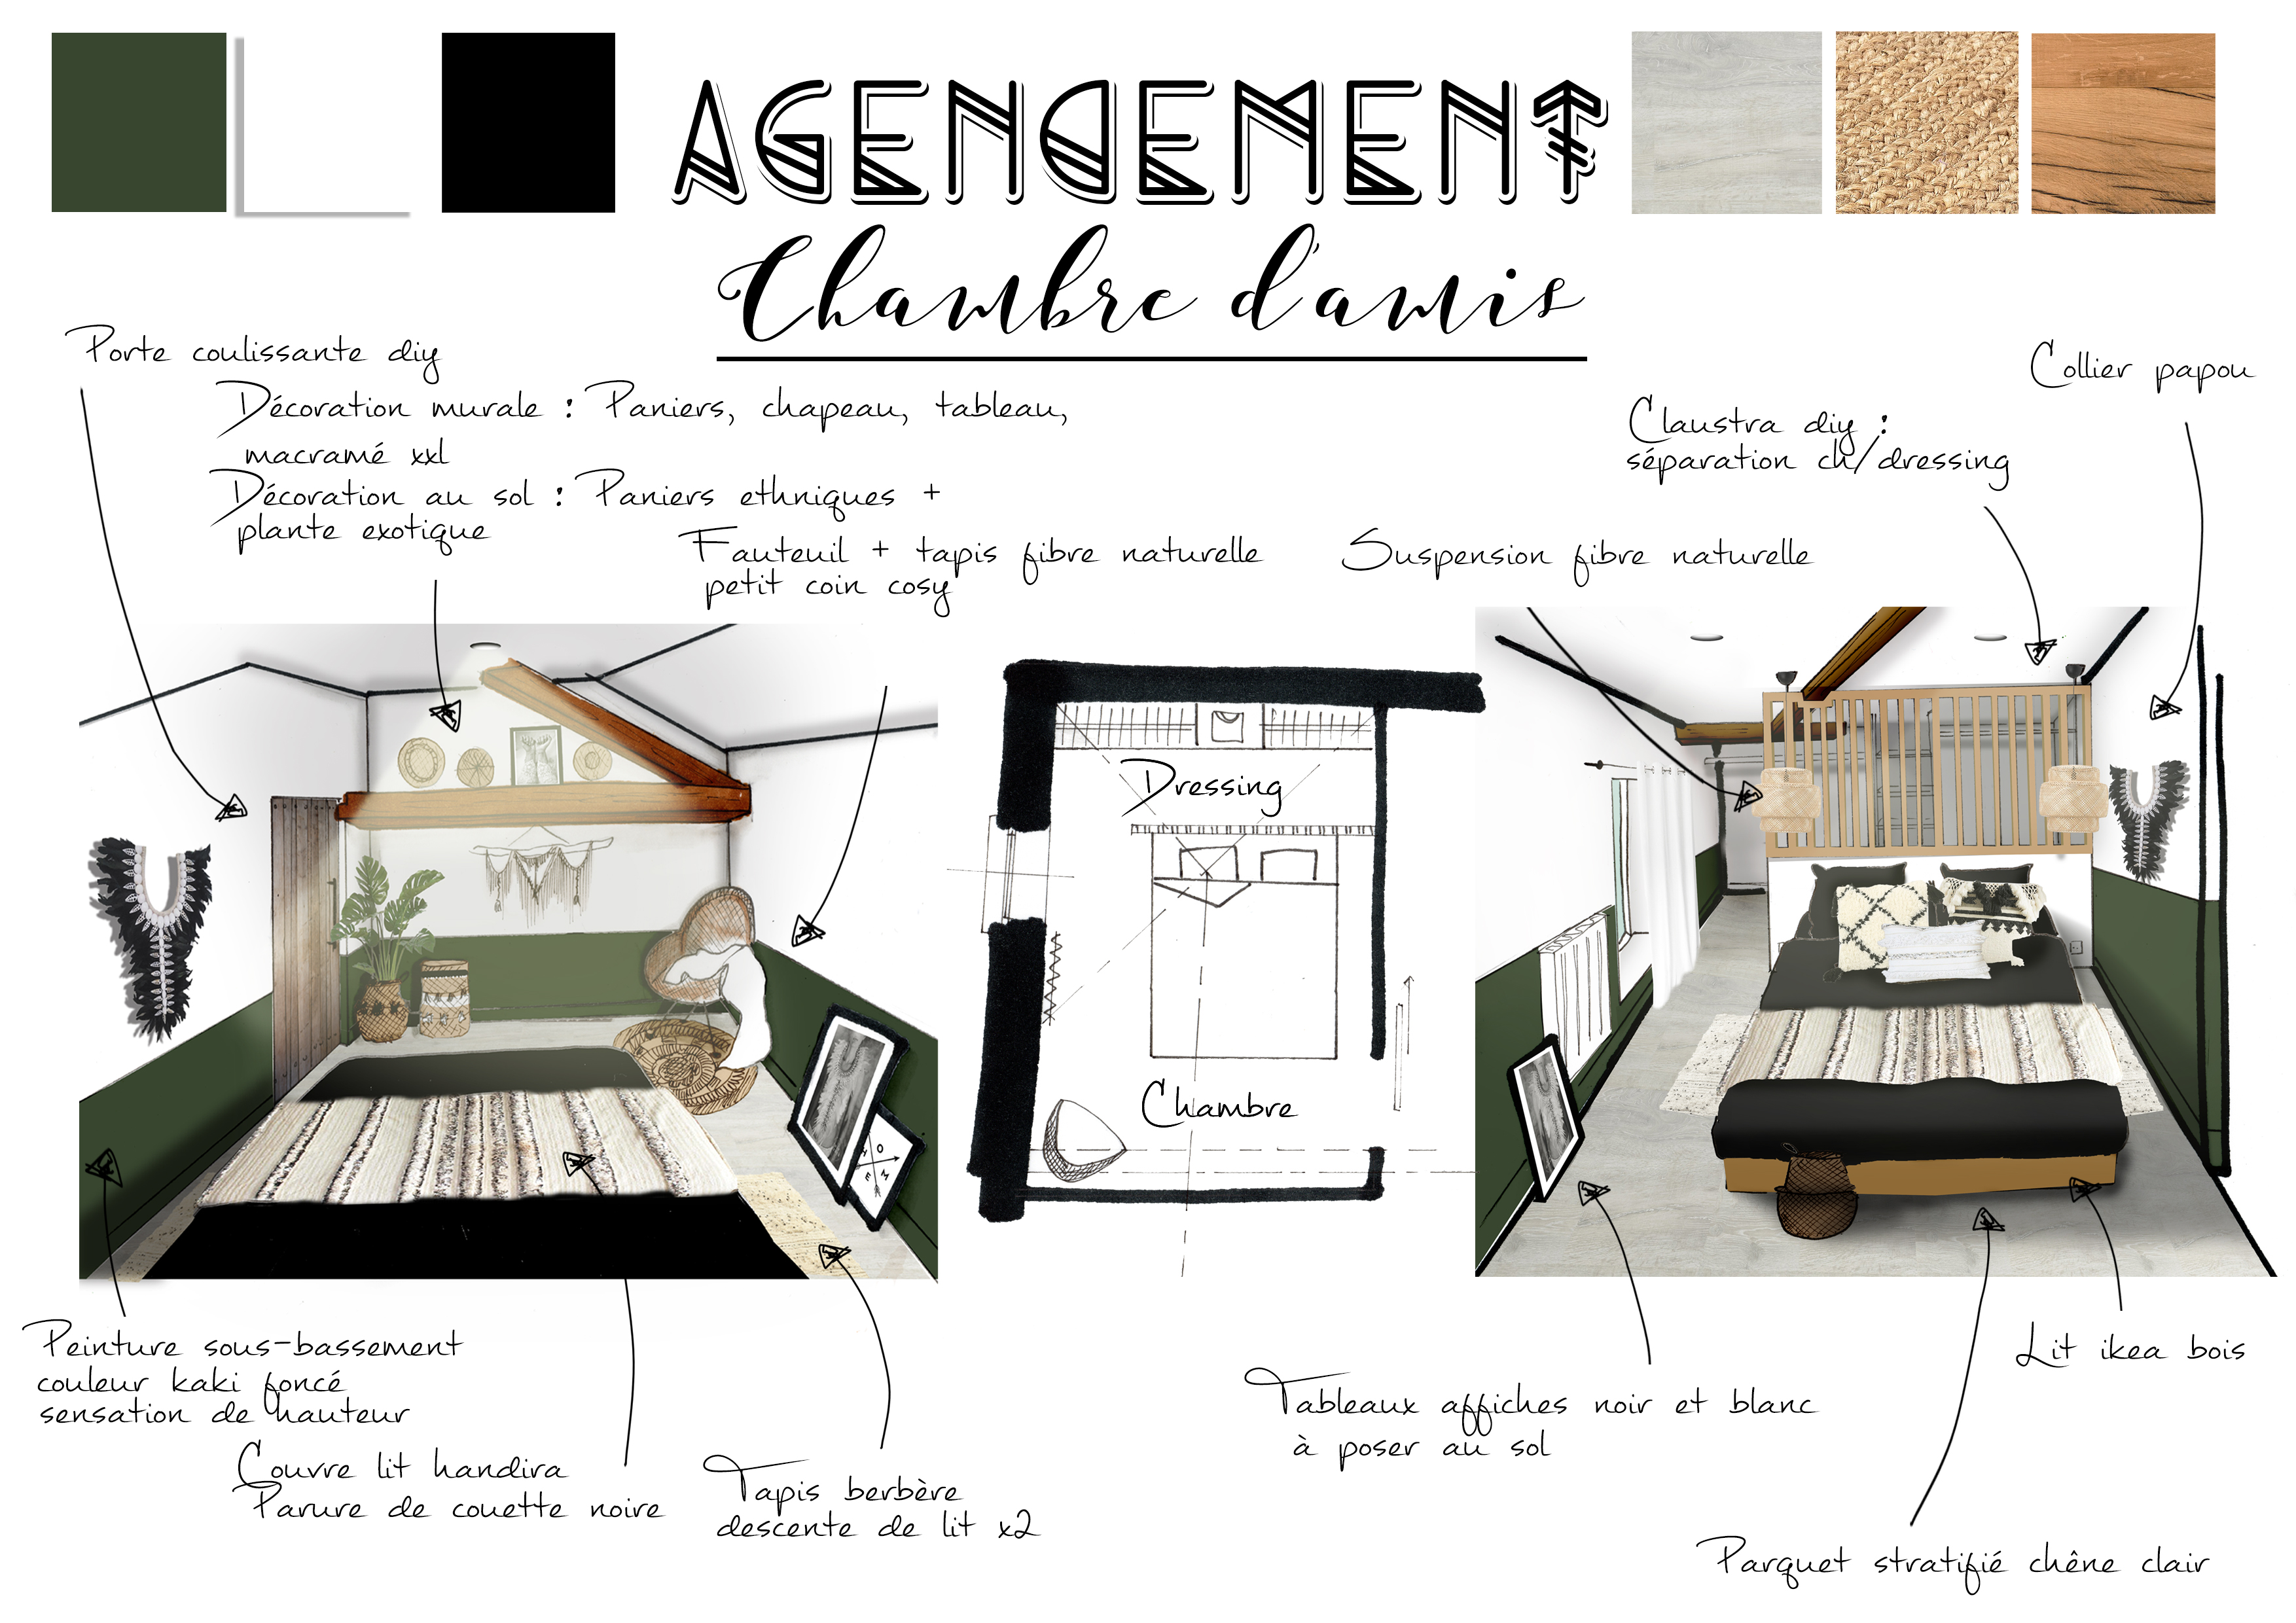 Agencement - Chambre d'amis